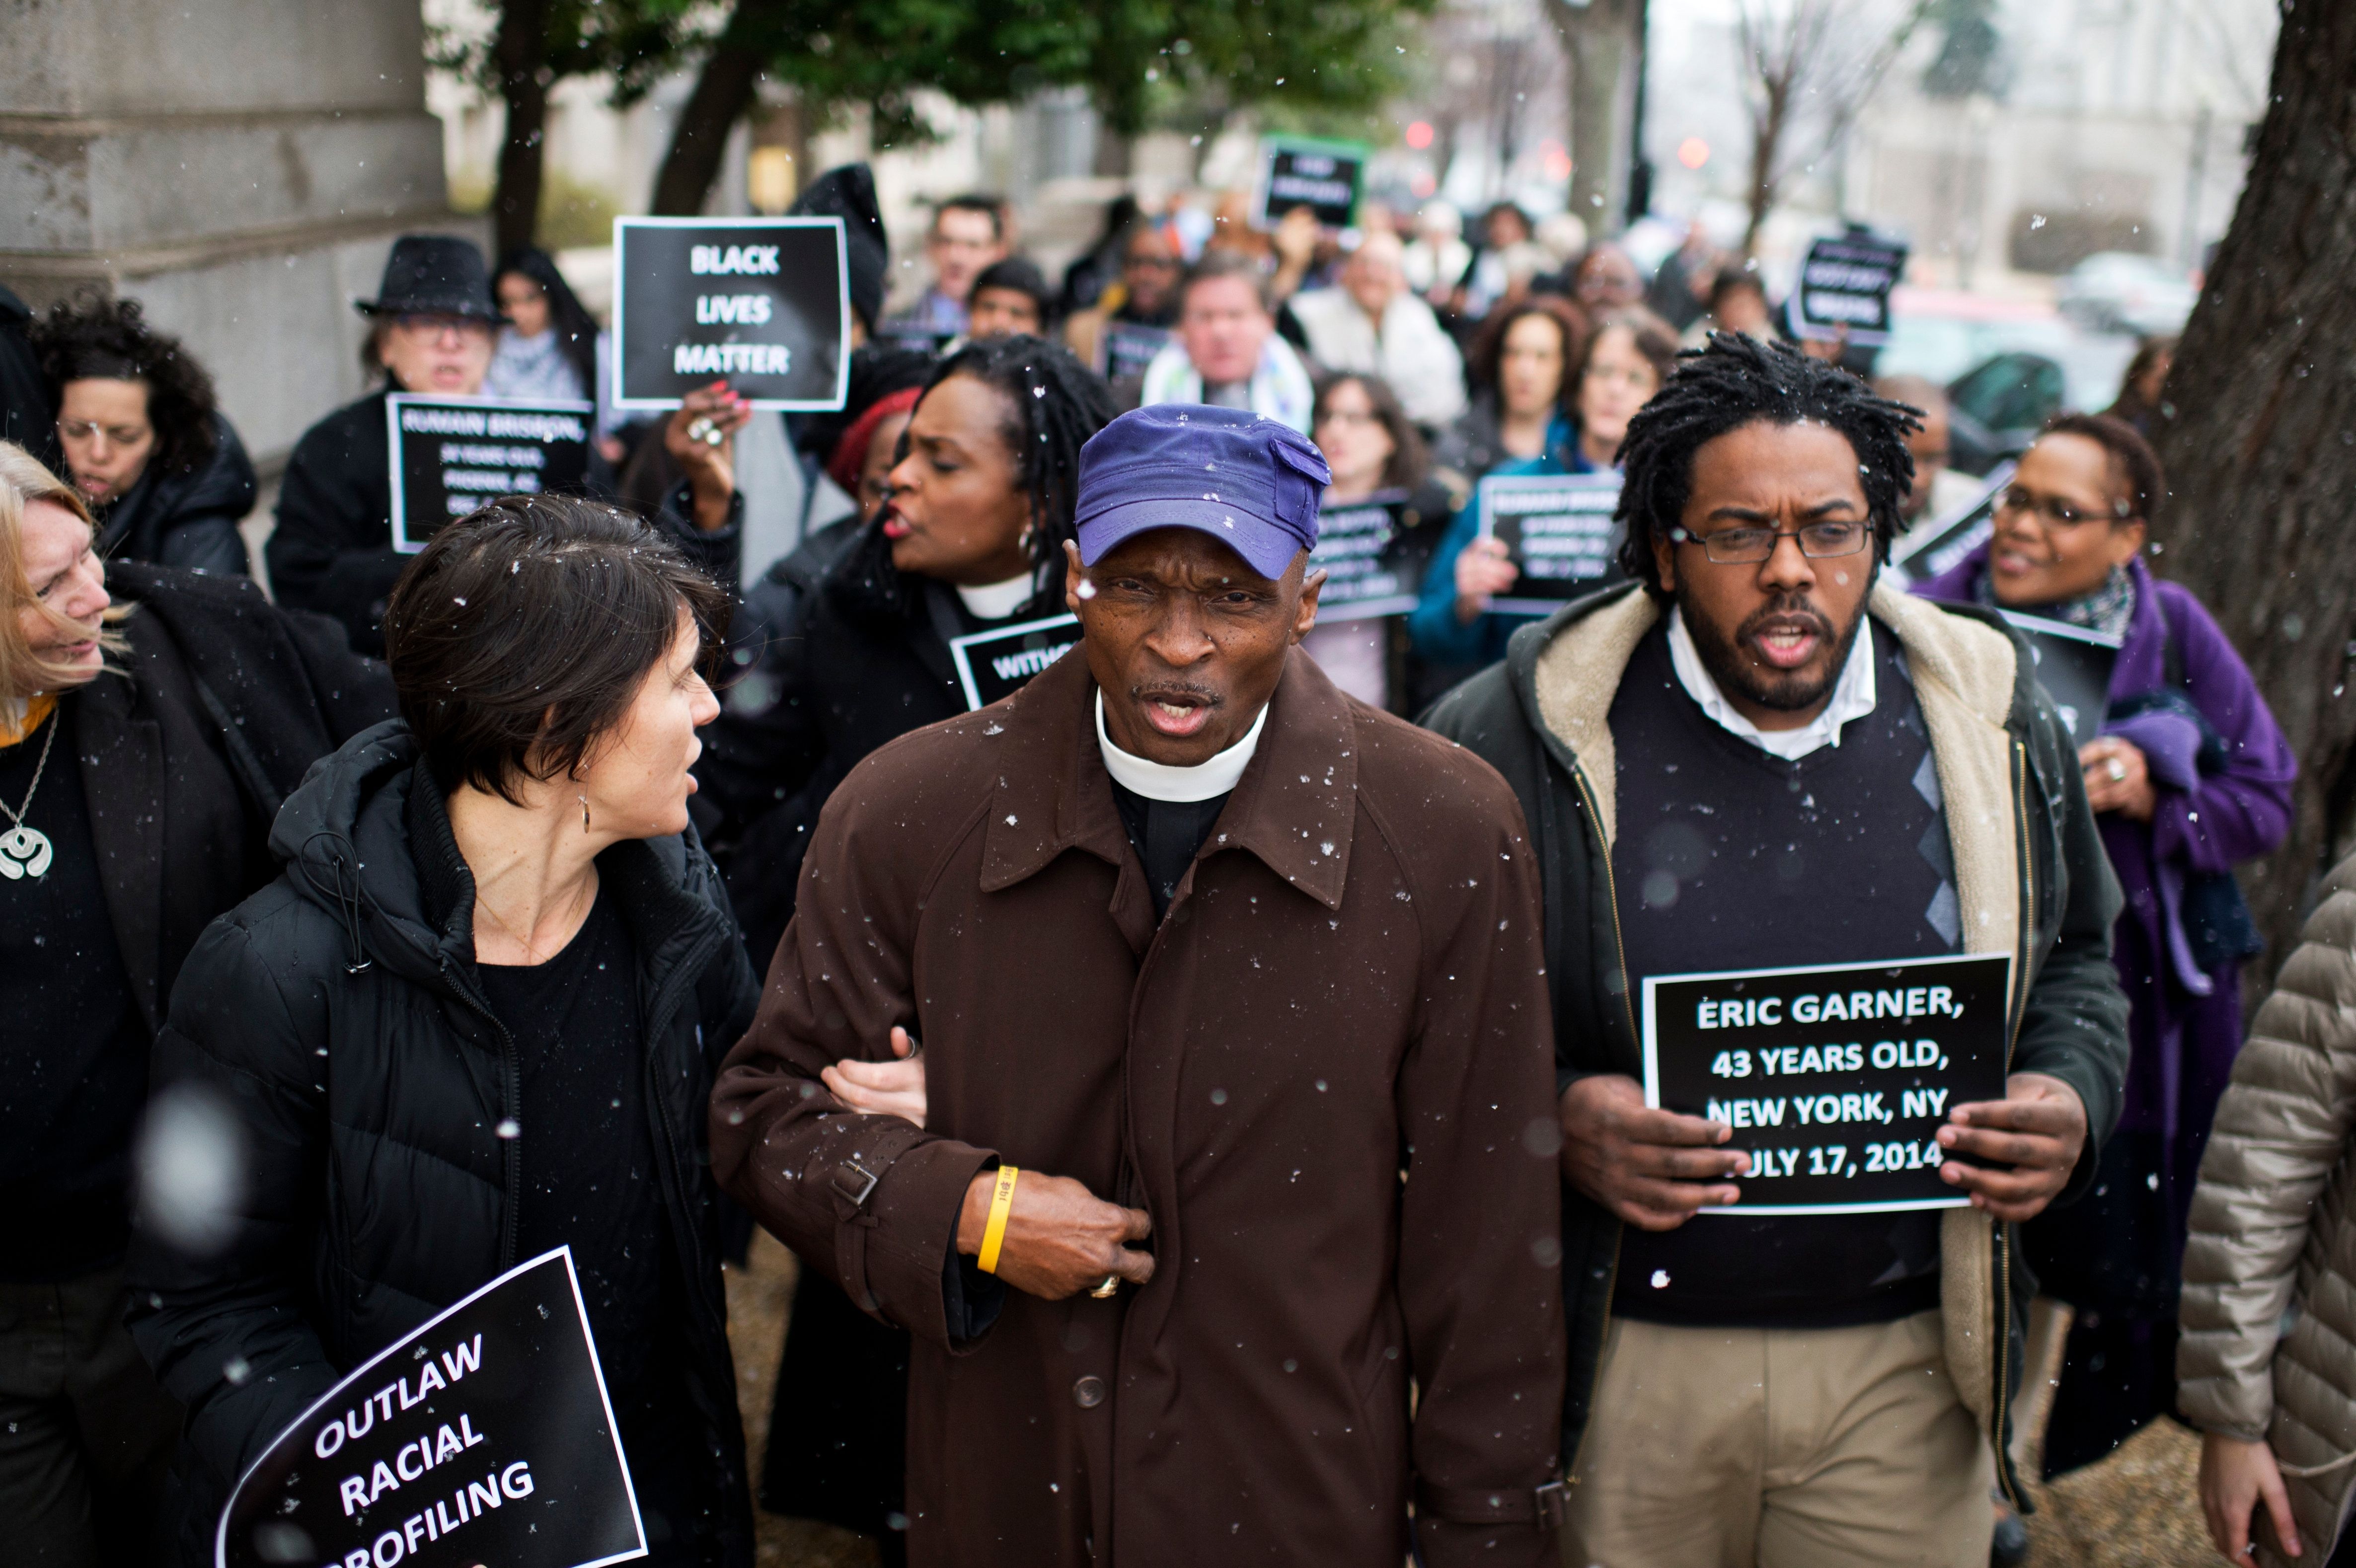 UNITED STATES - JANUARY 21: Rev. Dr. T. Anthony Spearman, center, of North Carolina, and other protesters representing the Black Lives Matter movement, march to the Capitol after a 'die in' in the Longworth cafeteria to call on Congress to take action on racial issues, January 21, 2015. (Photo By Tom Williams/CQ Roll Call)